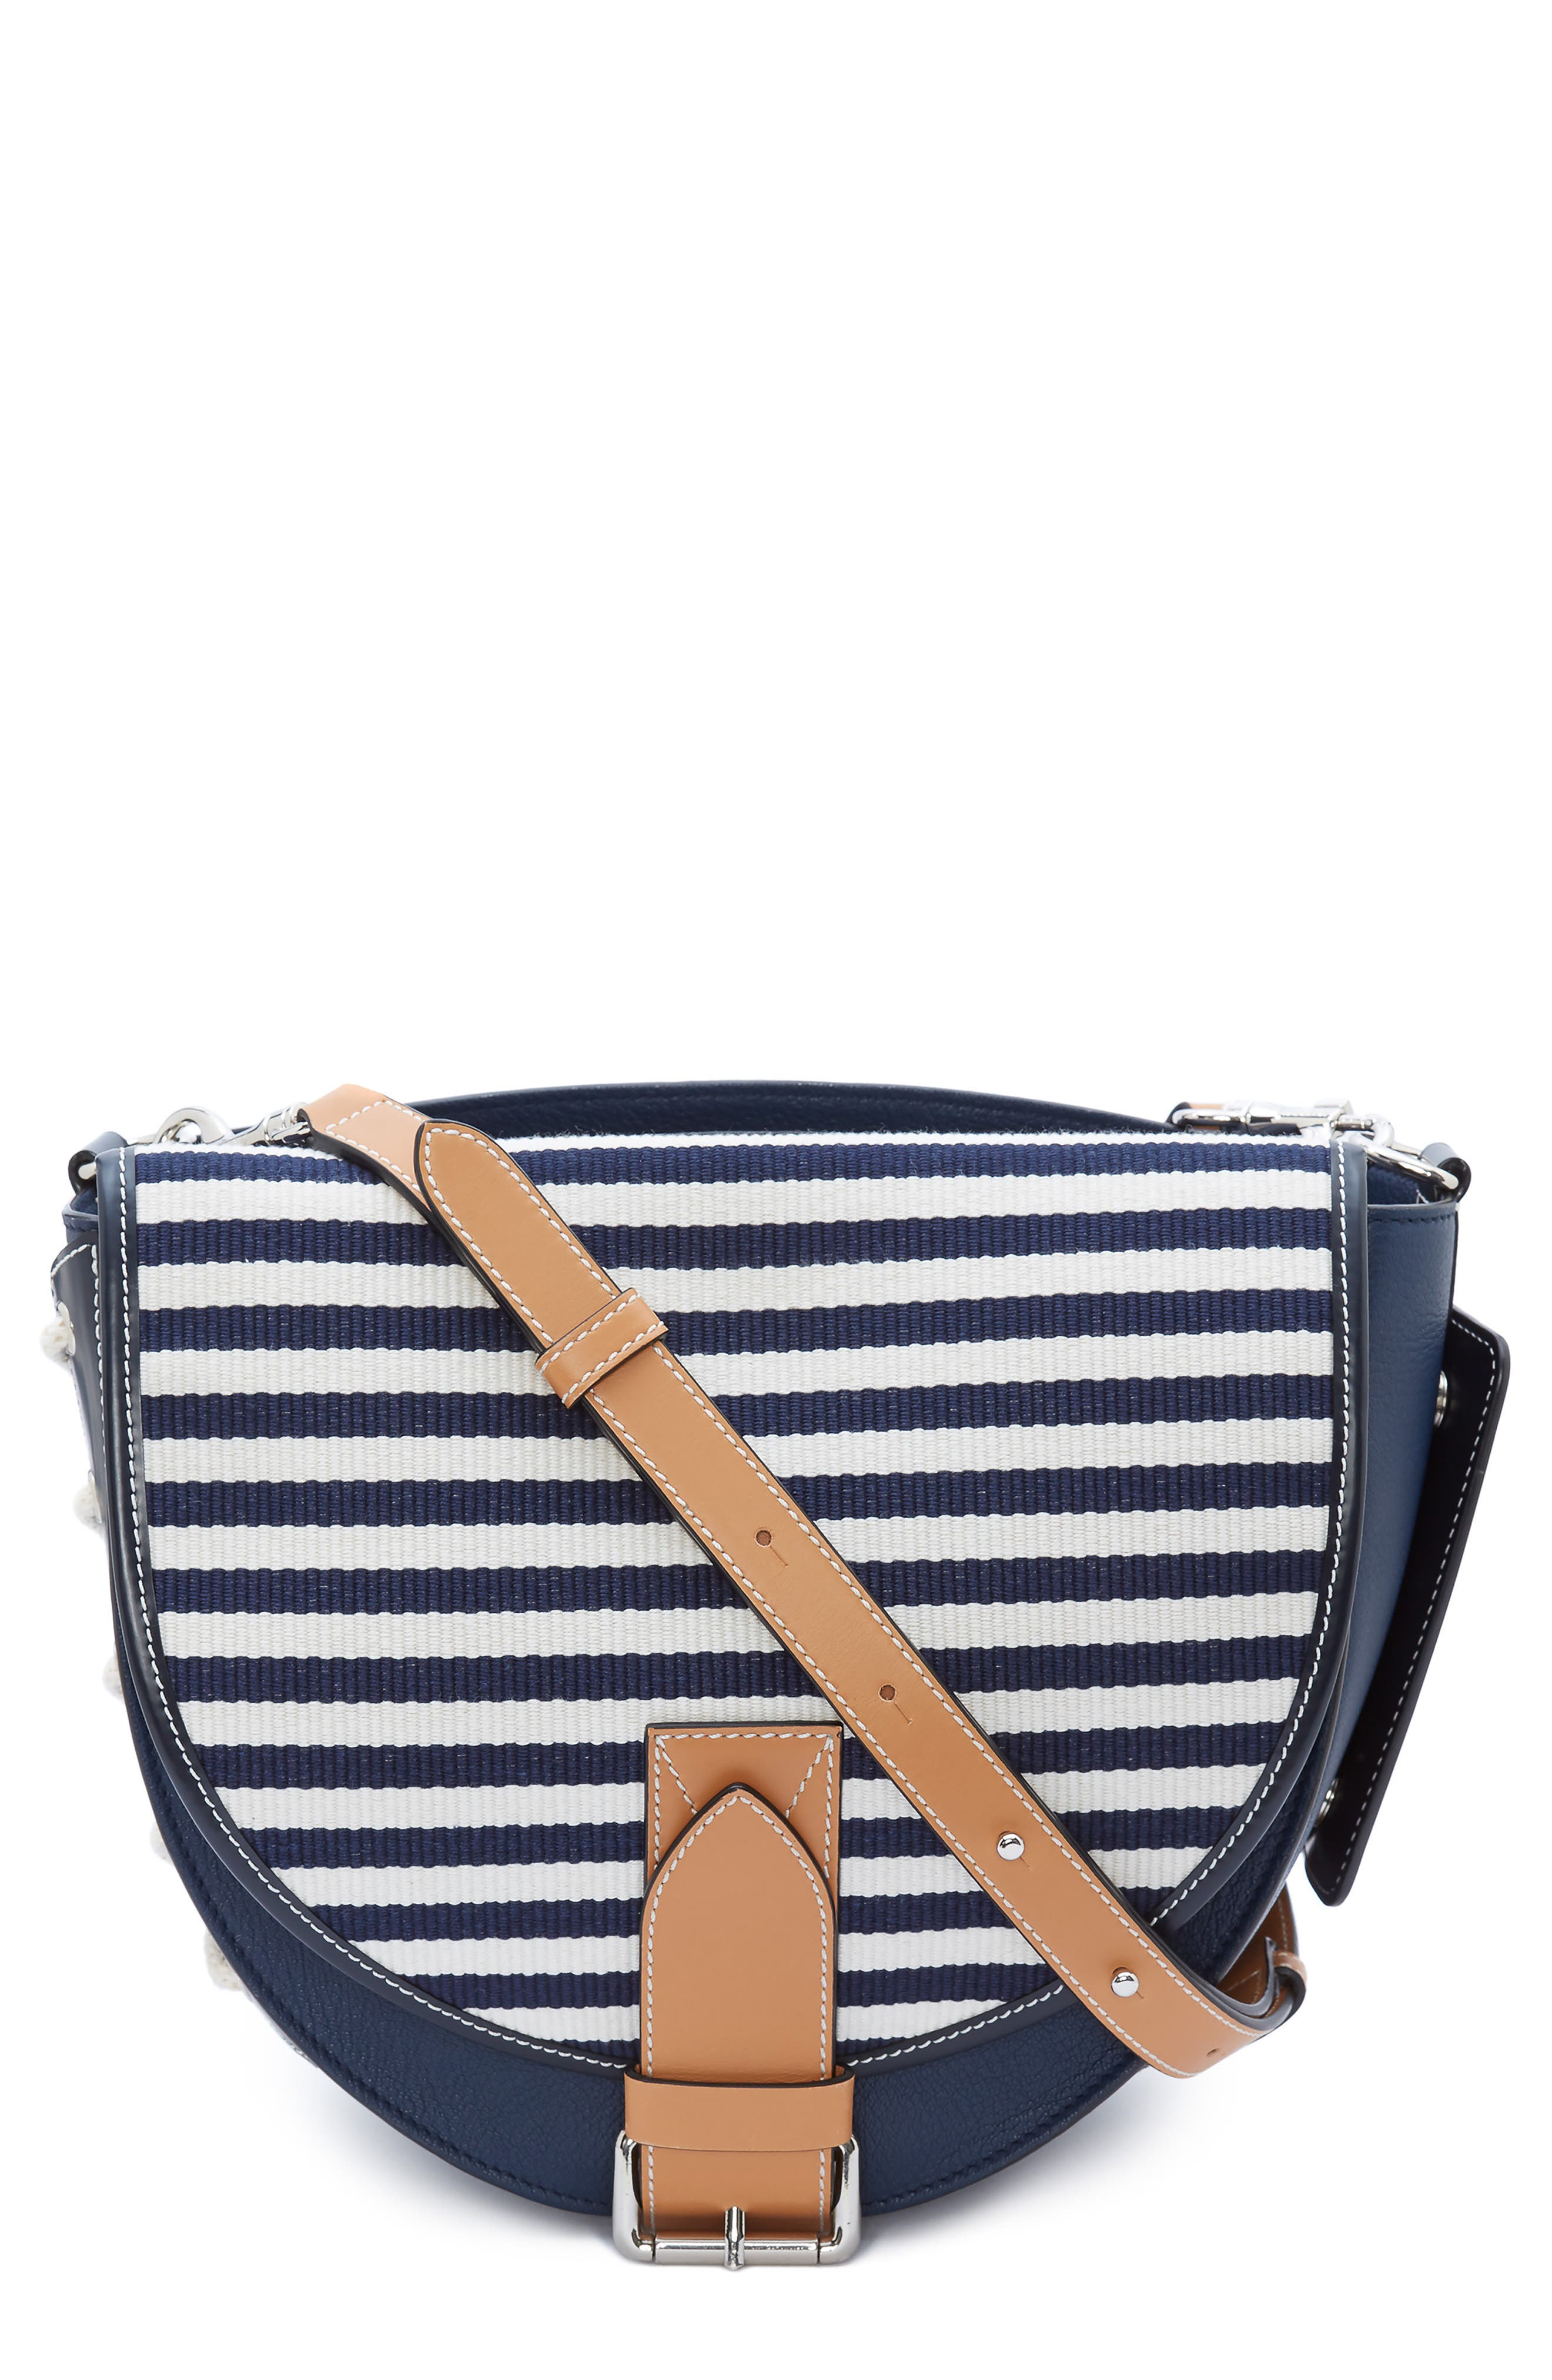 JW ANDERSON Small Bike Leather & Canvas Crossbody Bag, Main, color, NAVY BRETON